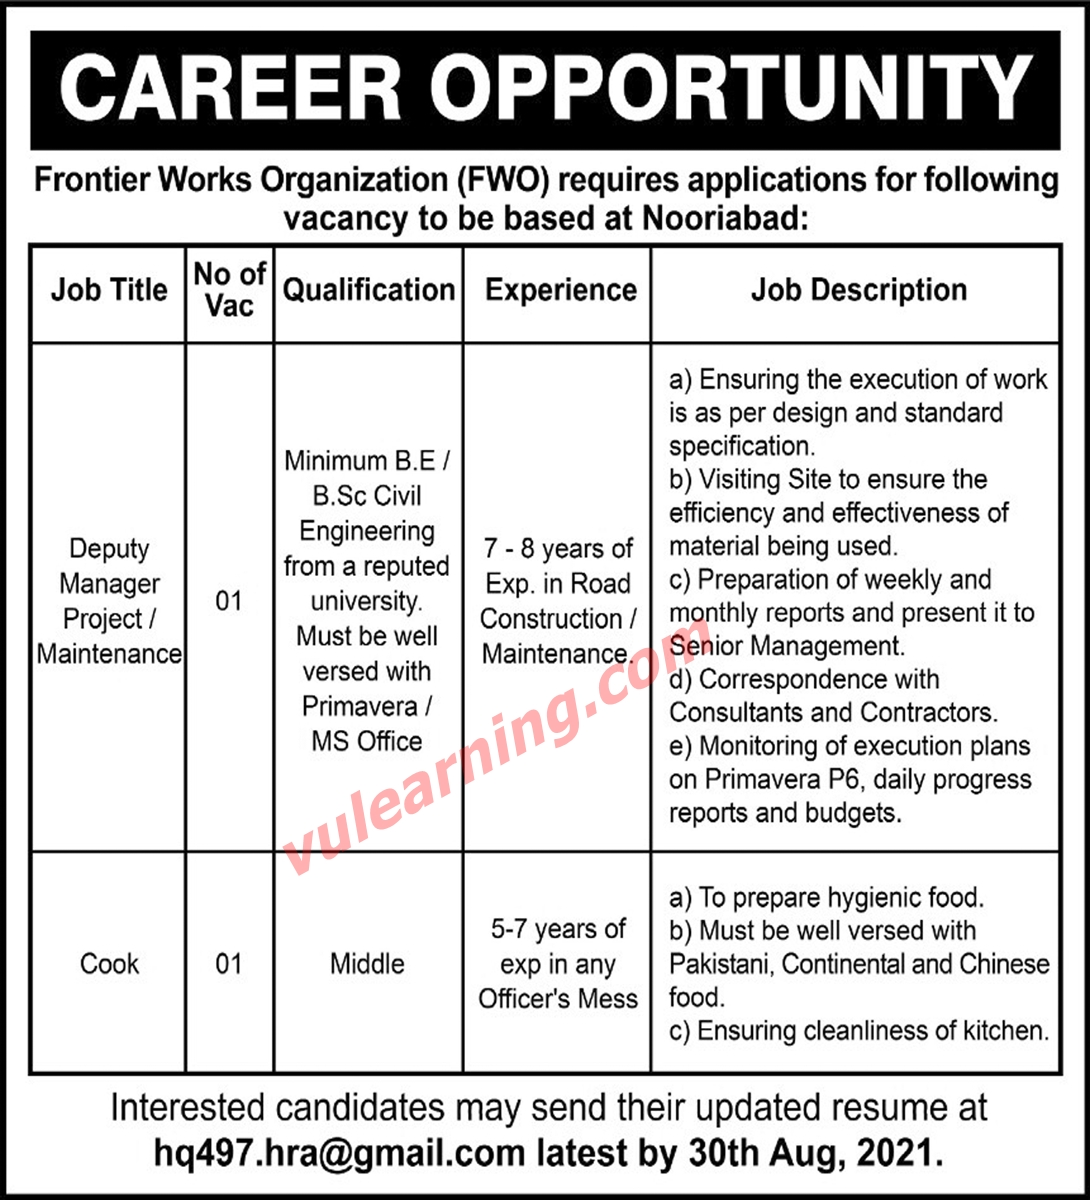 frontier works organization fwo jobs 2021 for deputy manager cook at nooriabad latest